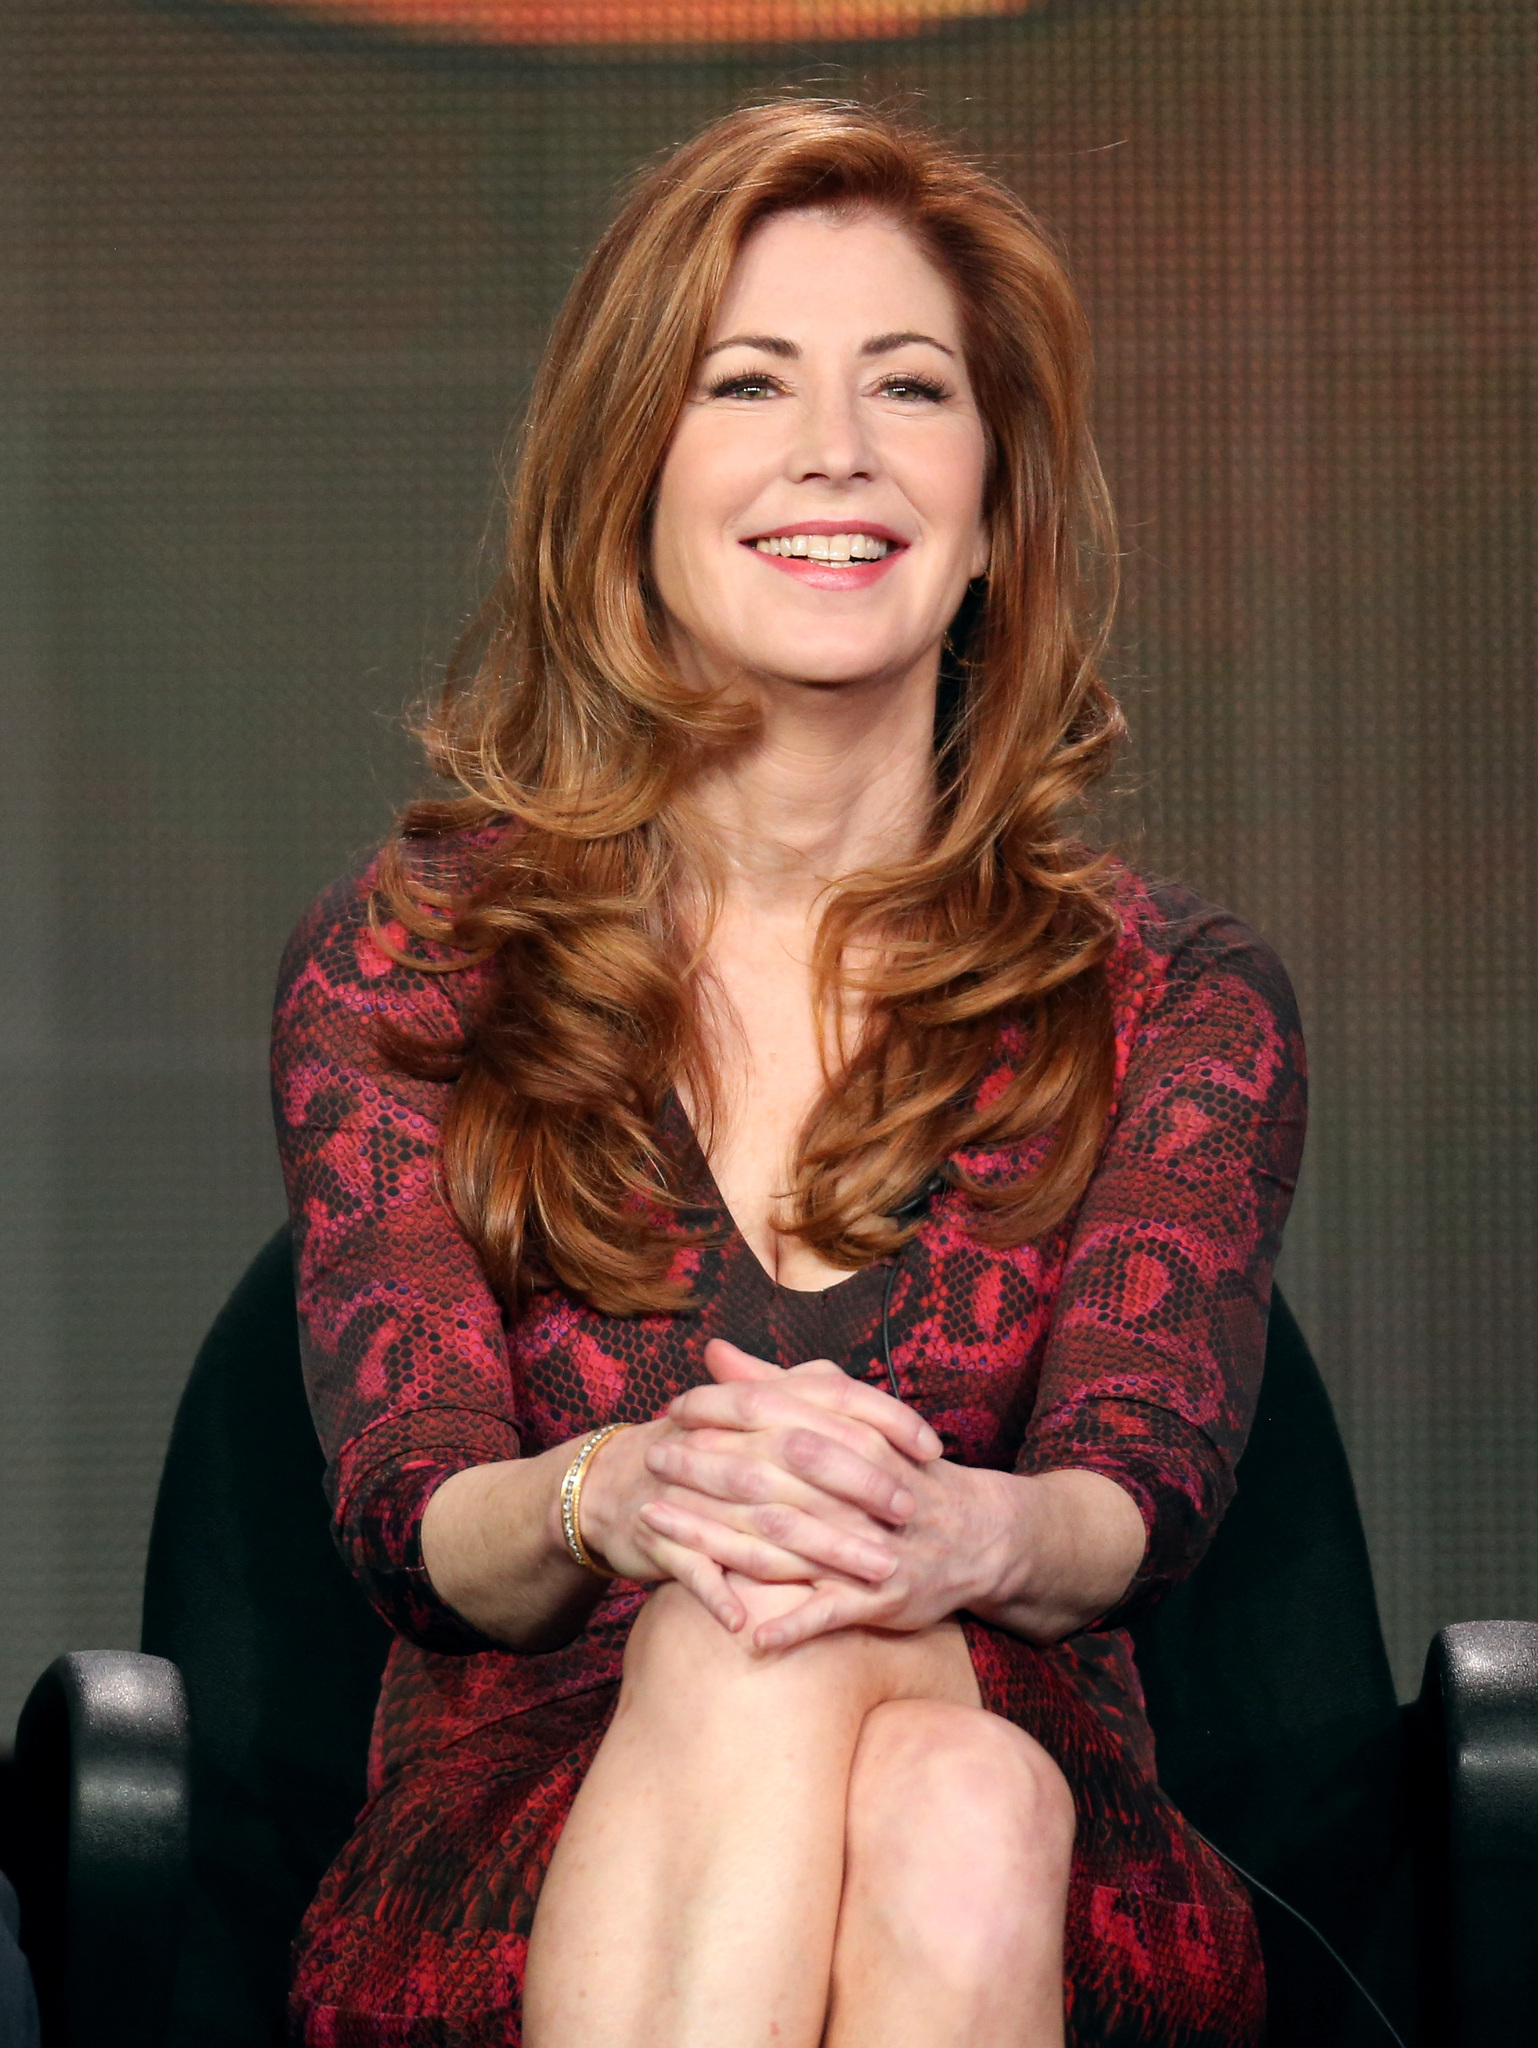 Dana Delany at an event for Body of Proof (2011)